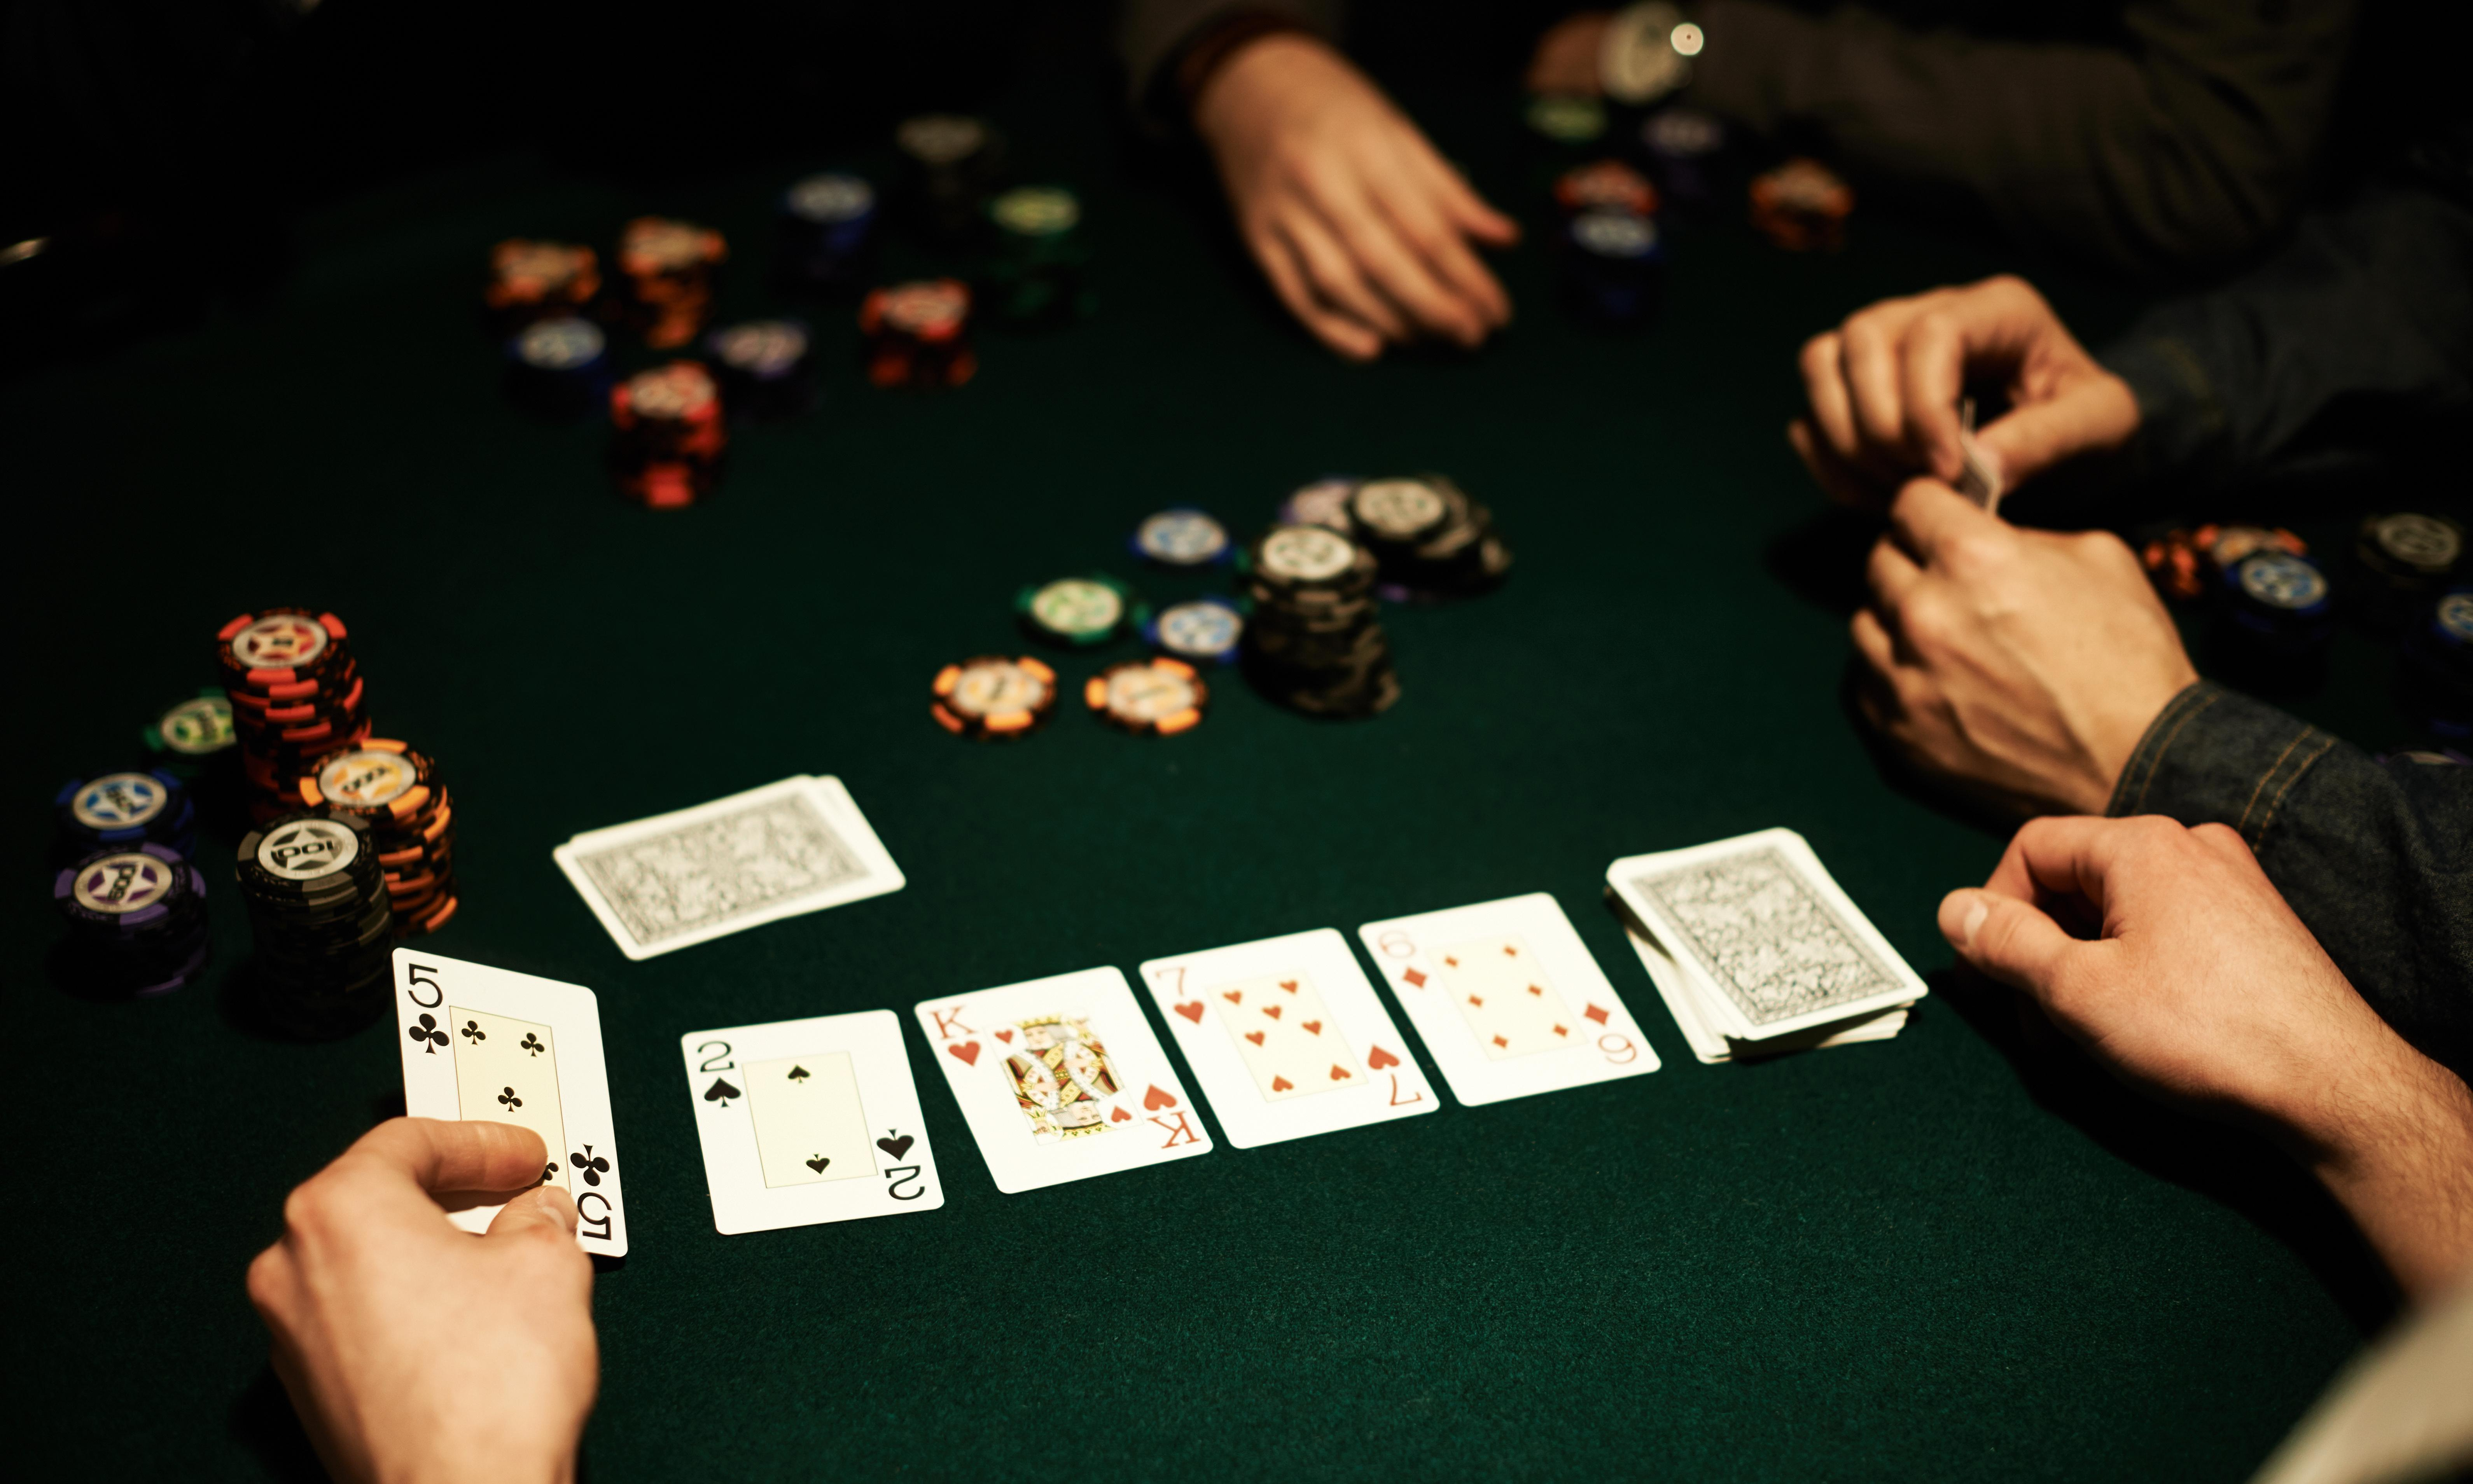 Buddhist poker player to give his $600,000 winnings to charity